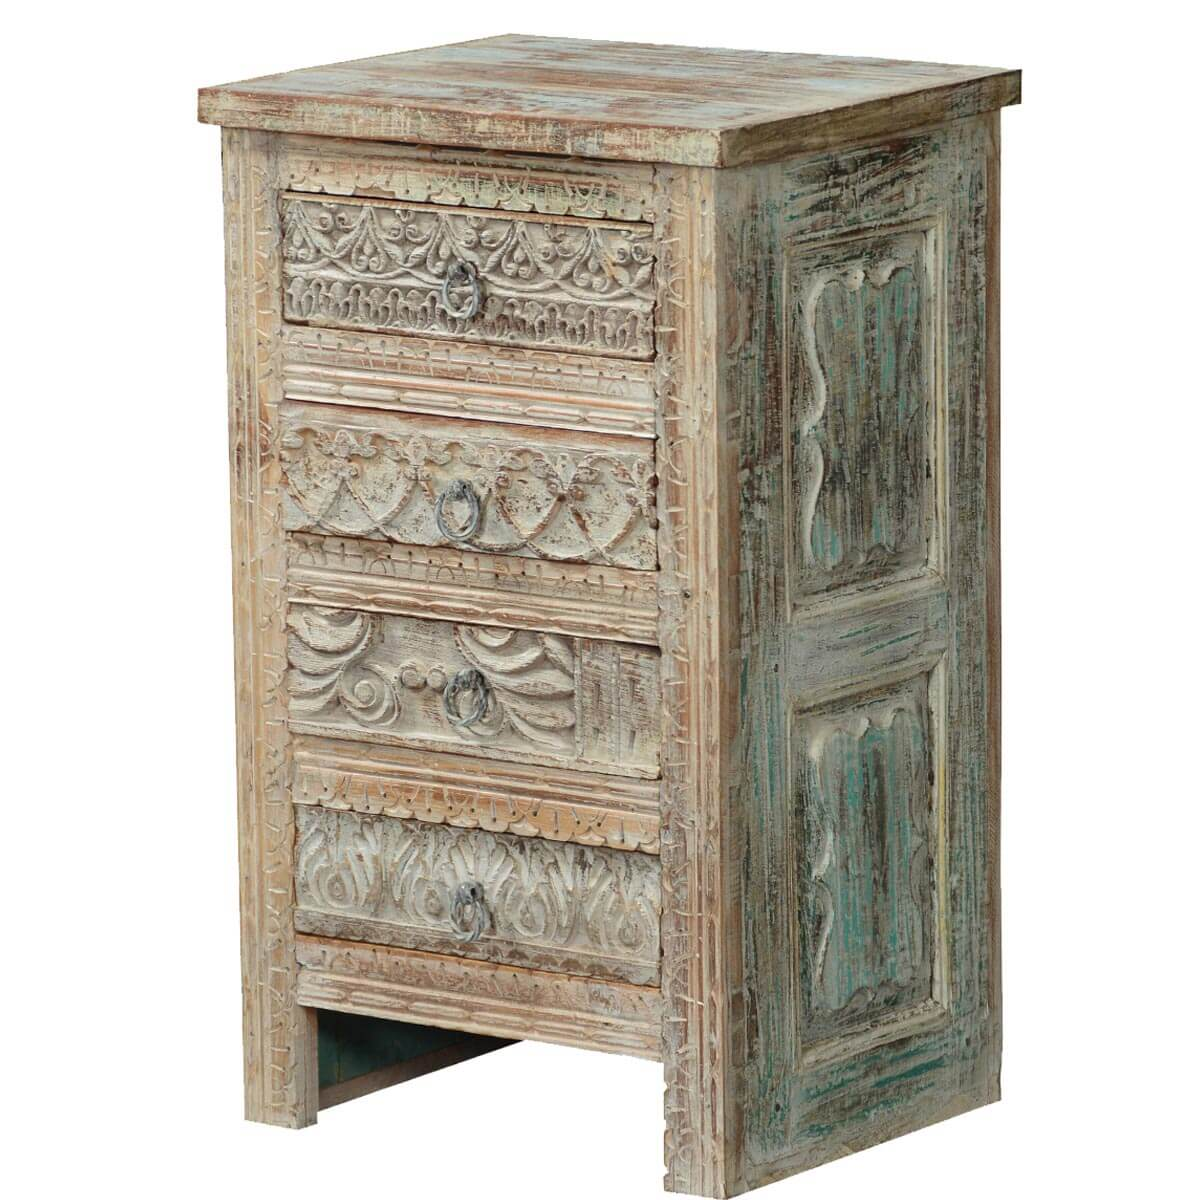 Tudor Winter White Rustic Mango Wood 4 Drawer Nightstand